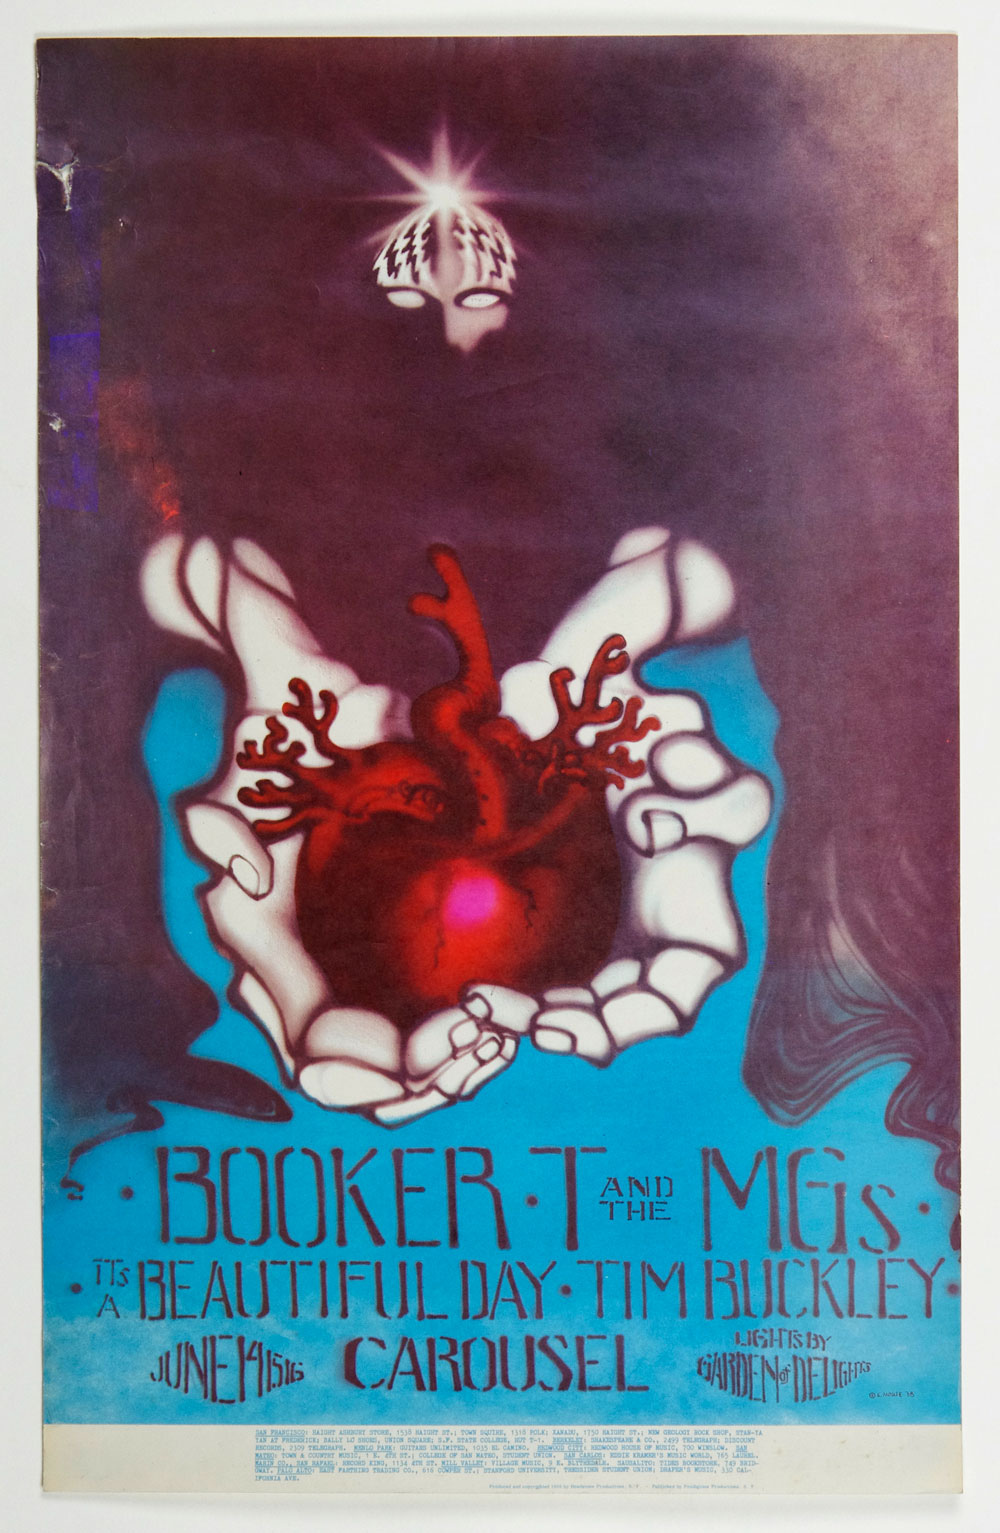 Carousel Ballroom Poster 1968 Jun 14 Booker T & the MG's It's Beautiful Day